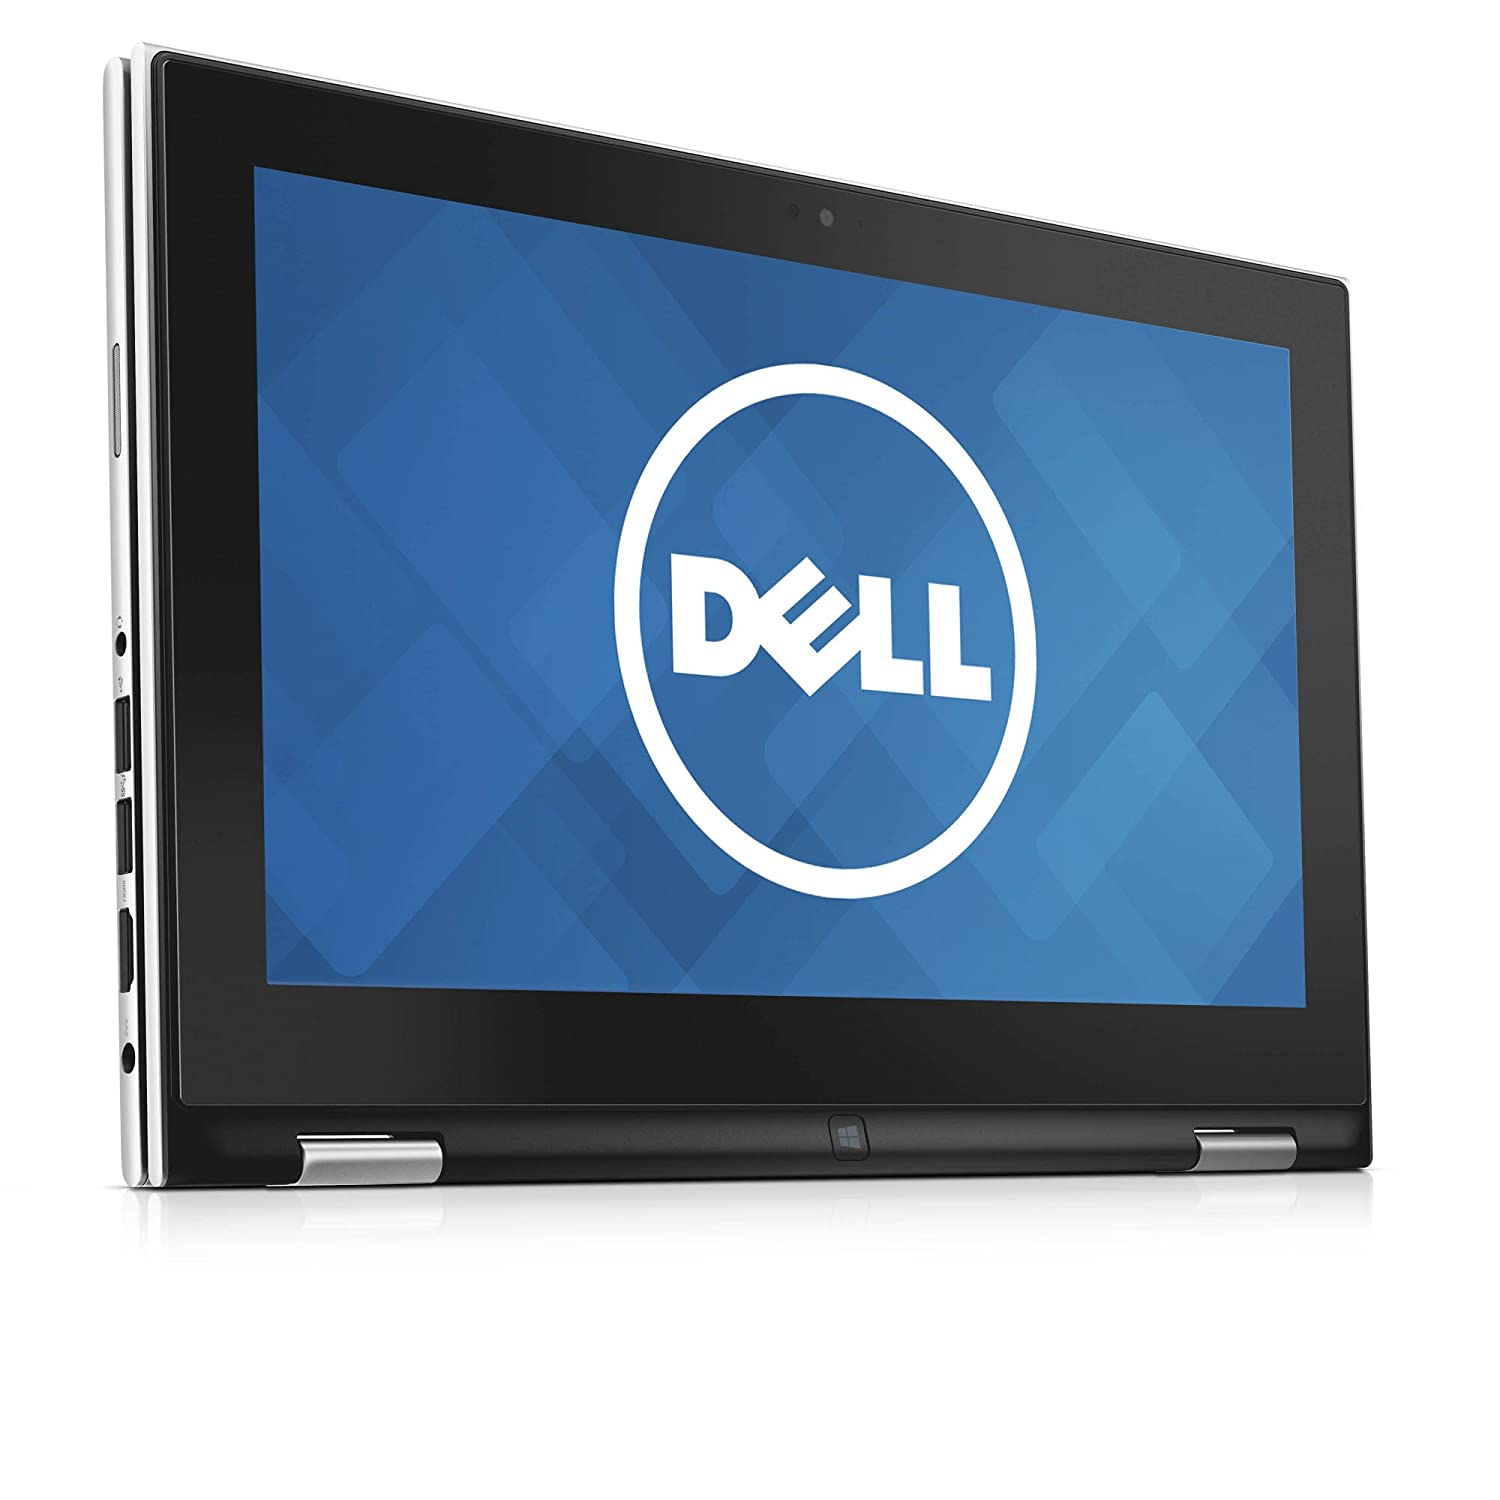 Dell-Inspiron-i3147-3750sLV-11-6-Inch-2-in-1-Convertible-Touchscreen-Laptop